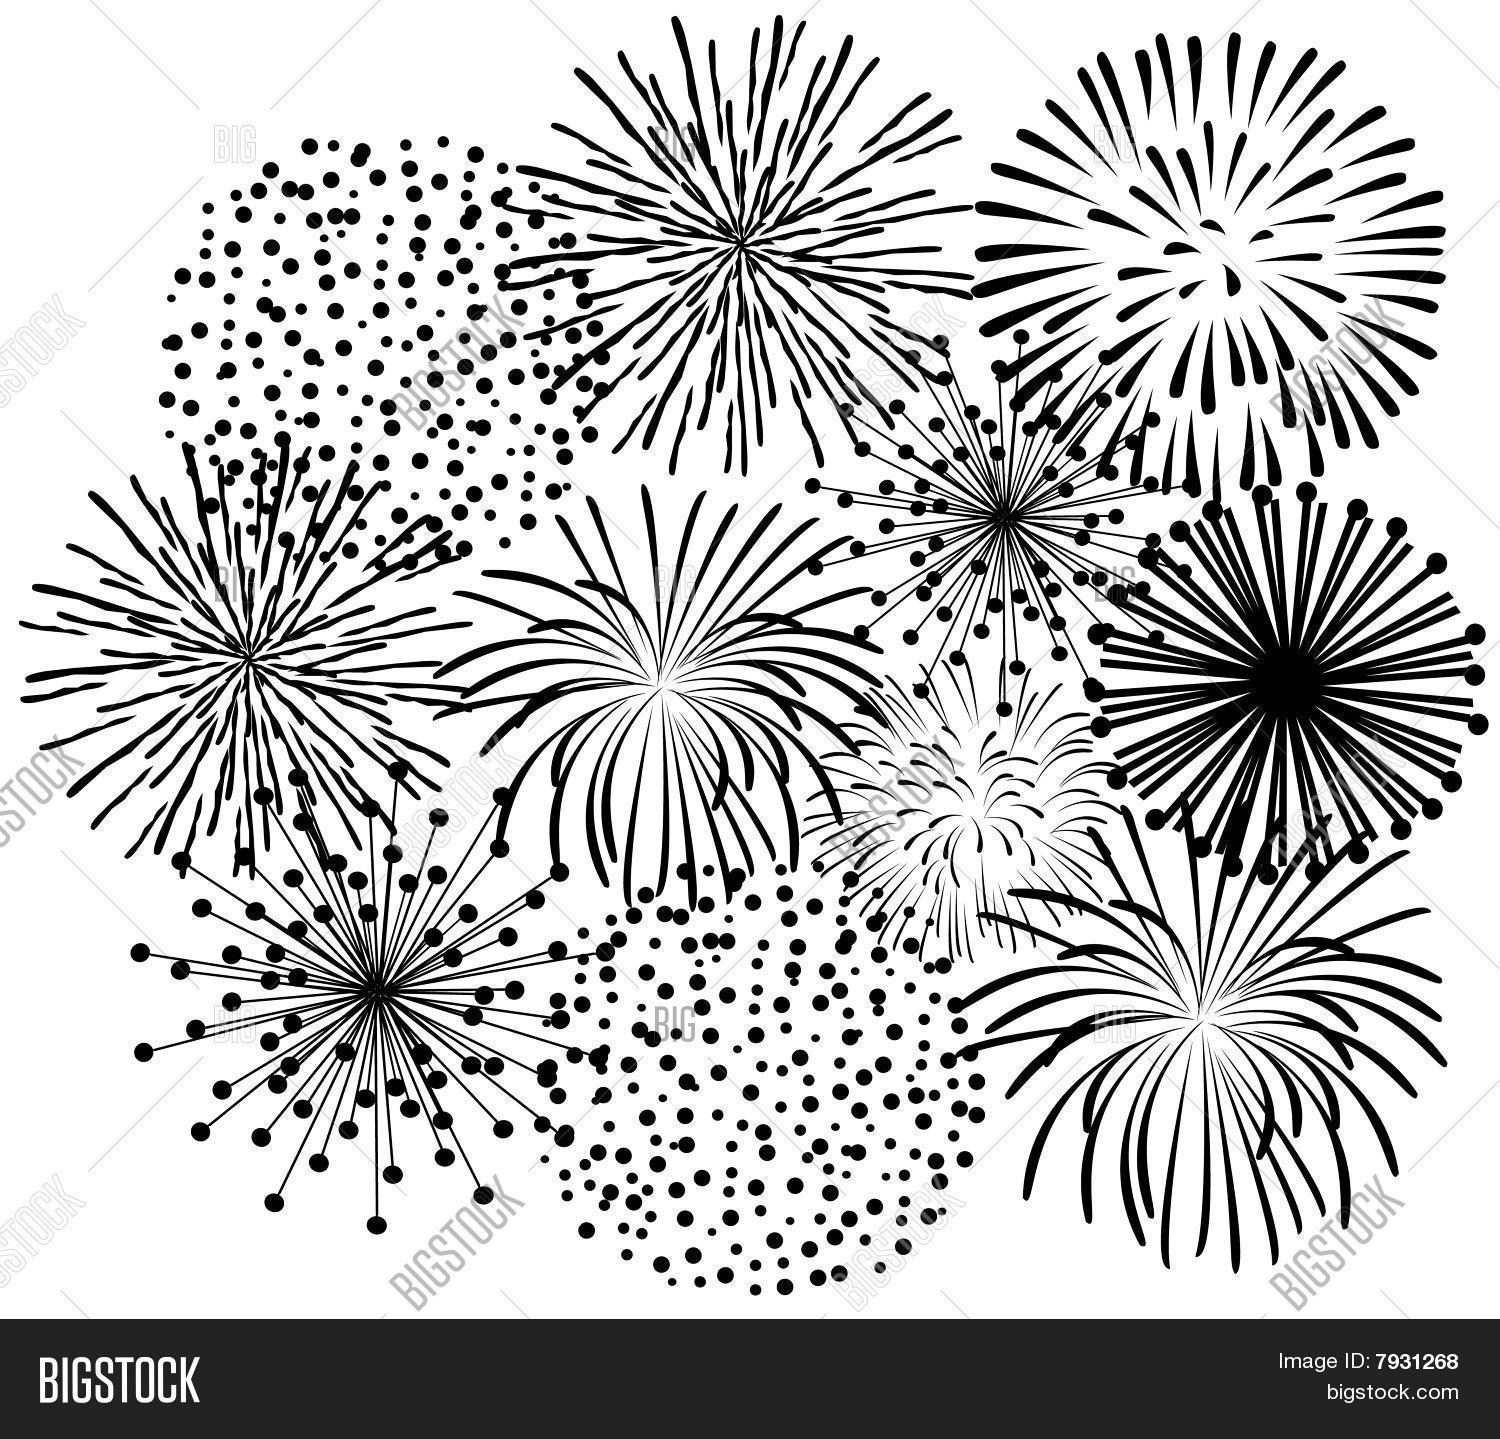 Simple Firework Drawing At Getdrawings